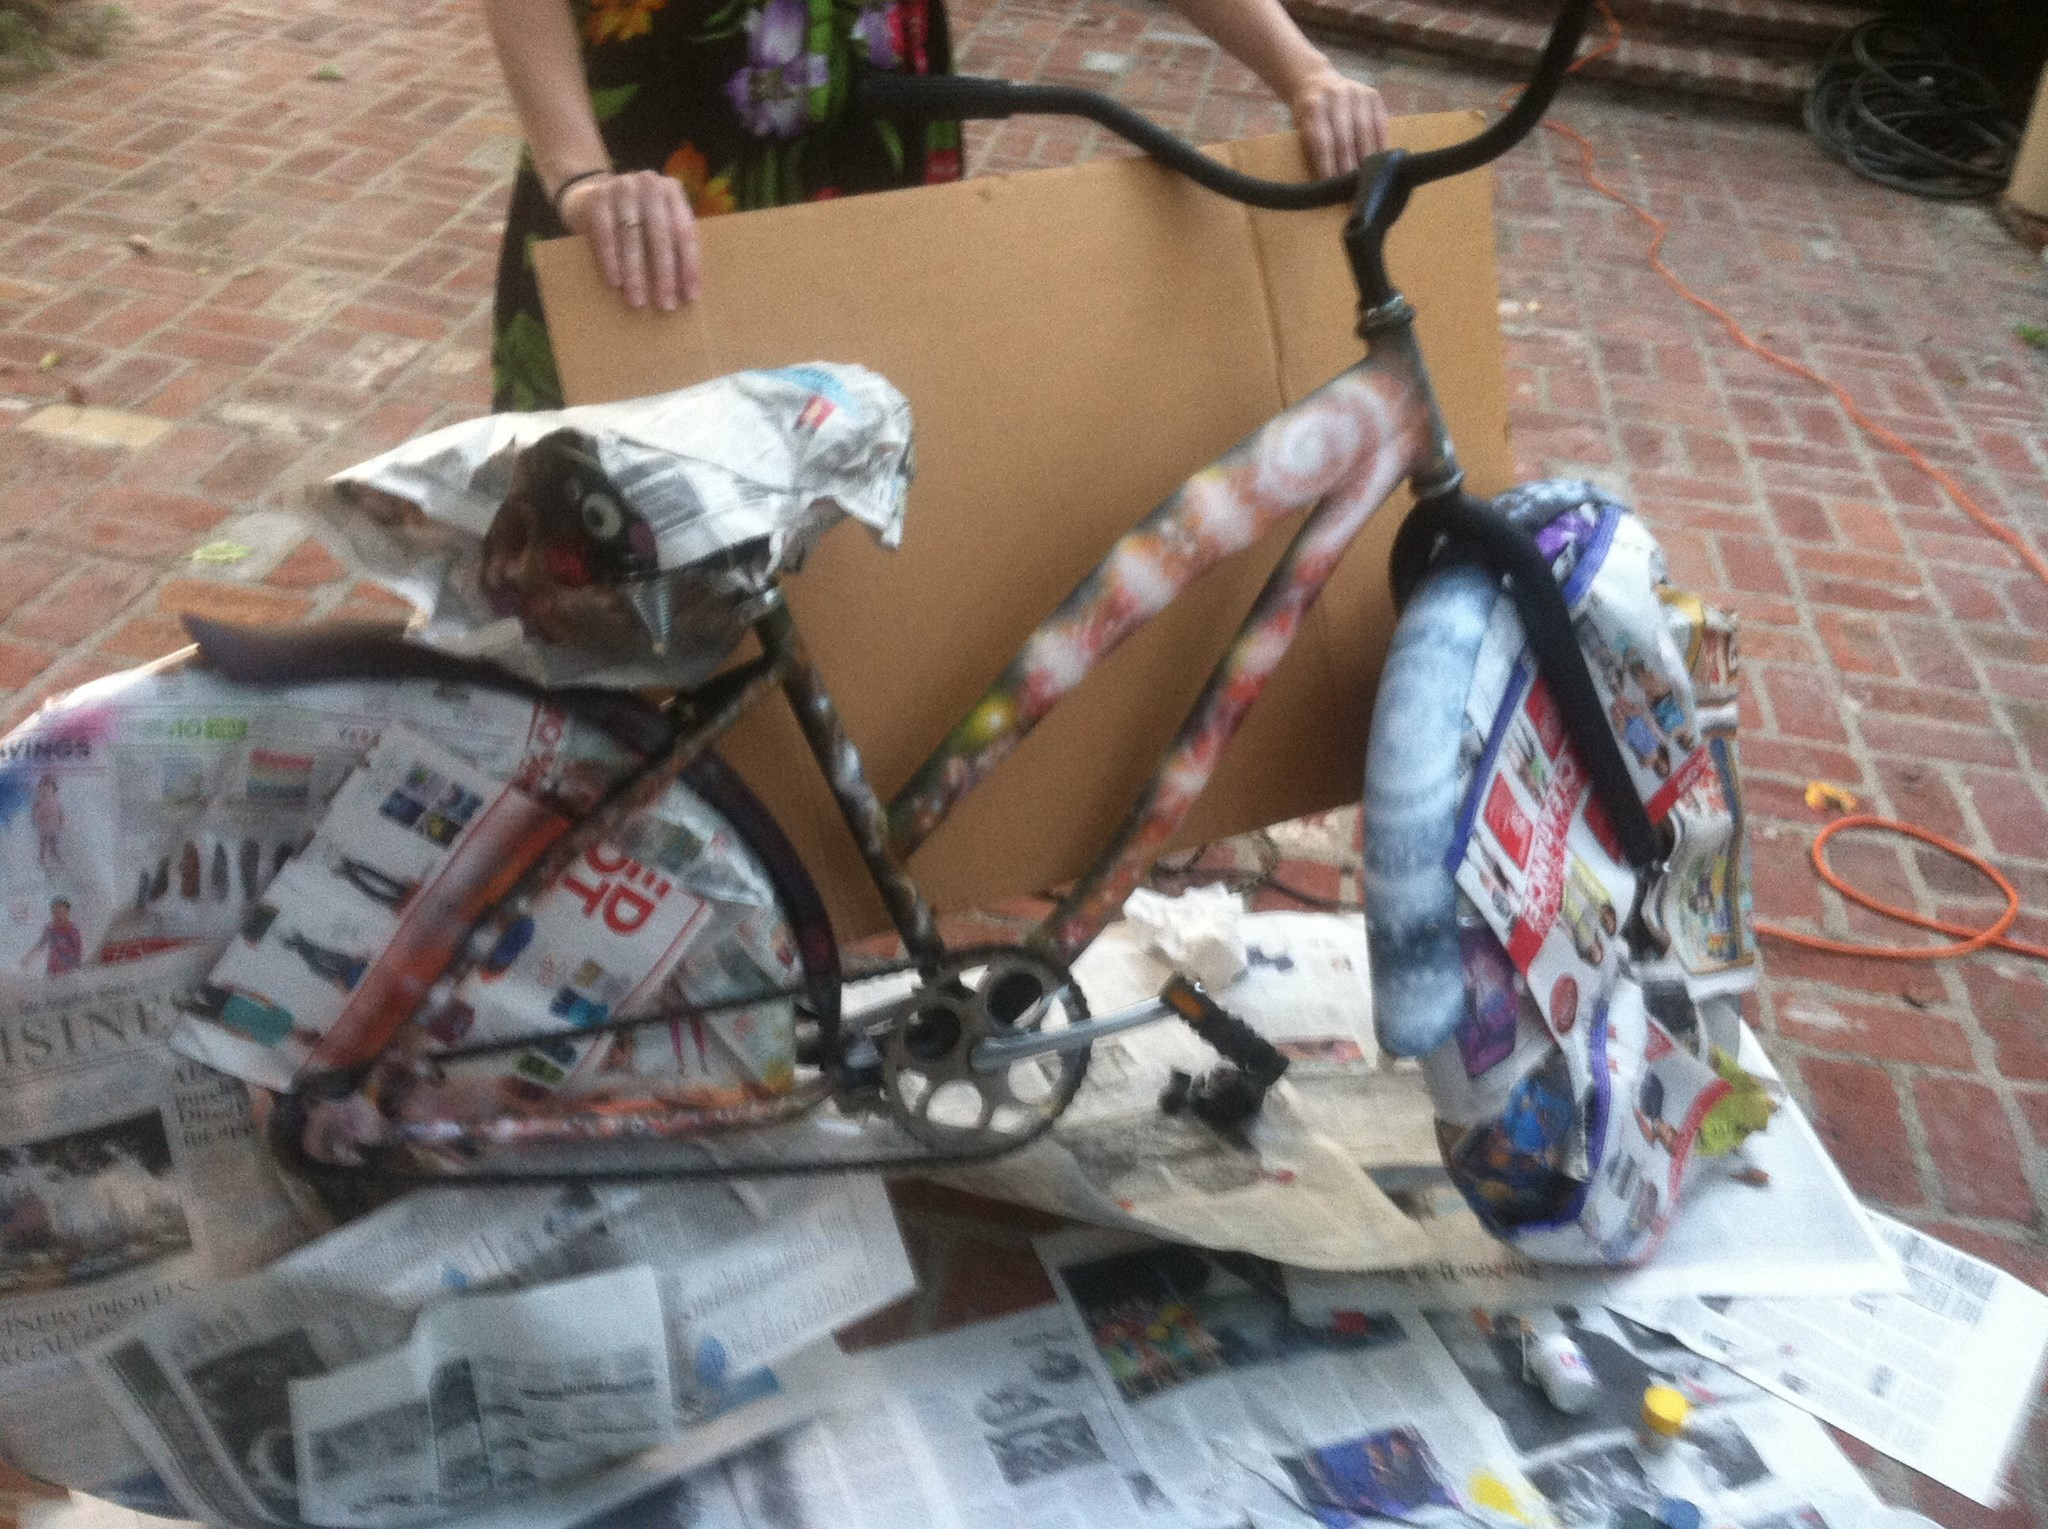 Airbrushed Galaxy Bike in Progress